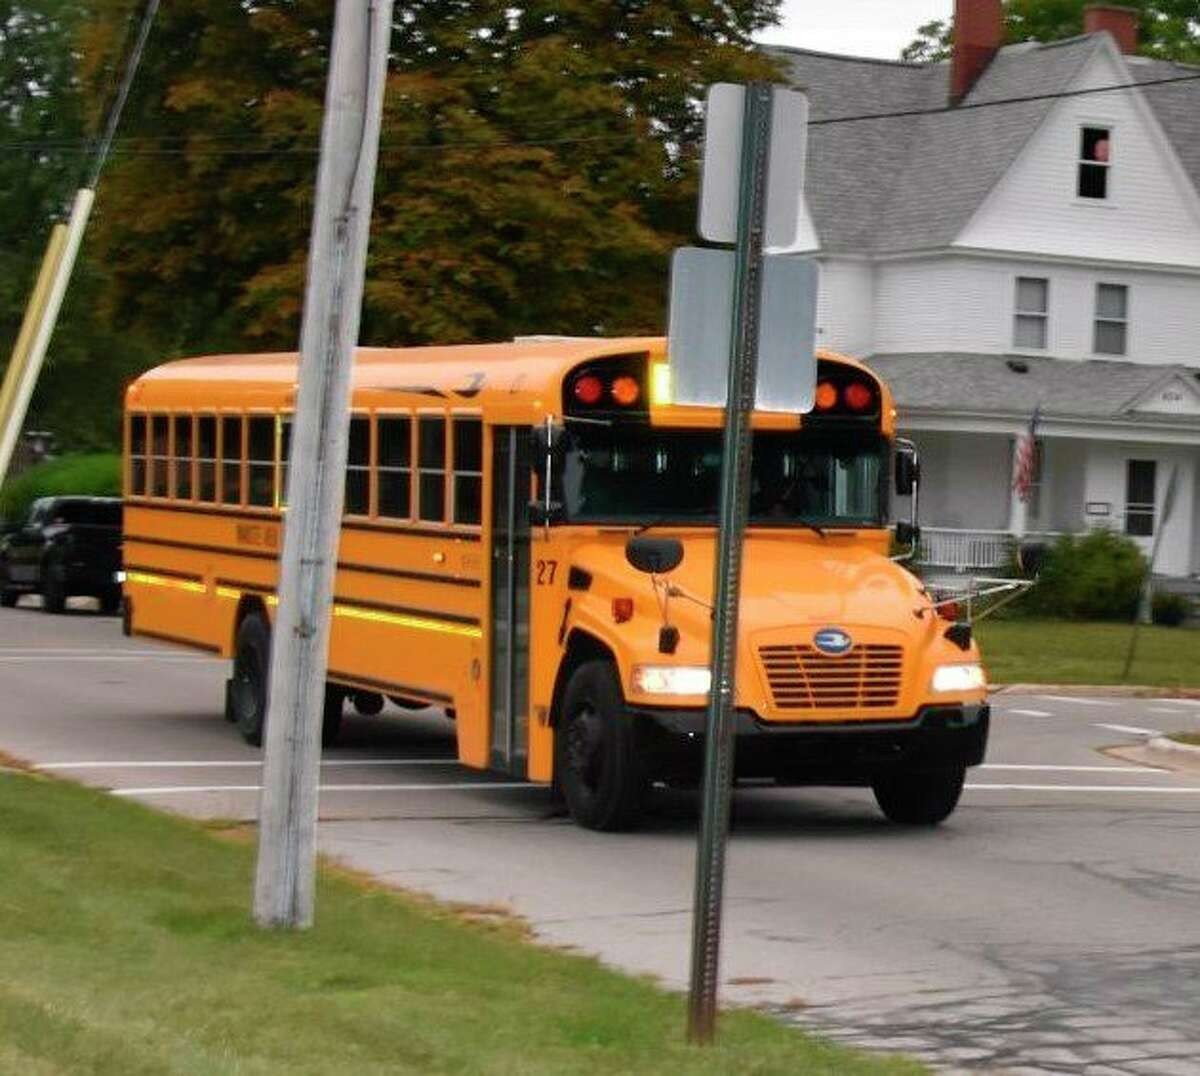 U.S. Department of Education on April 6 denied Michigan's request to waive standardized testing for this school year. State education officials wanted to focus on other metrics for academic progress and support students emotionally during a disrupted academic year.